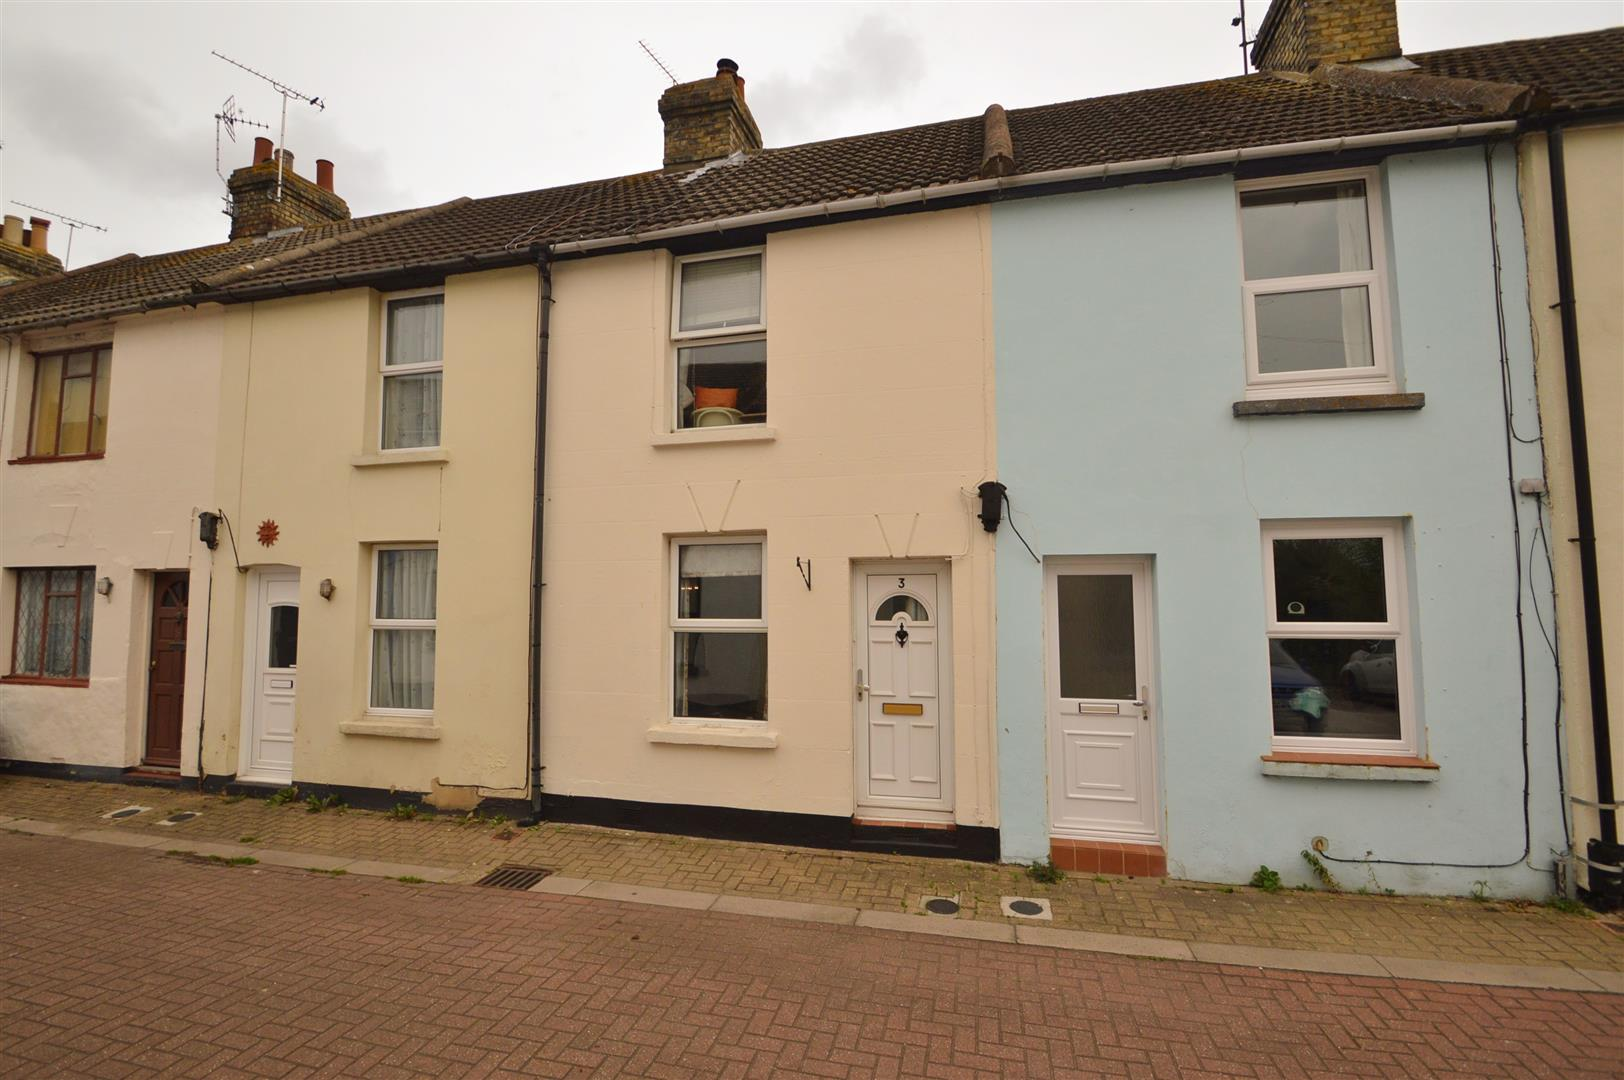 2 Bedrooms Terraced House for sale in Castle Street, Wouldham